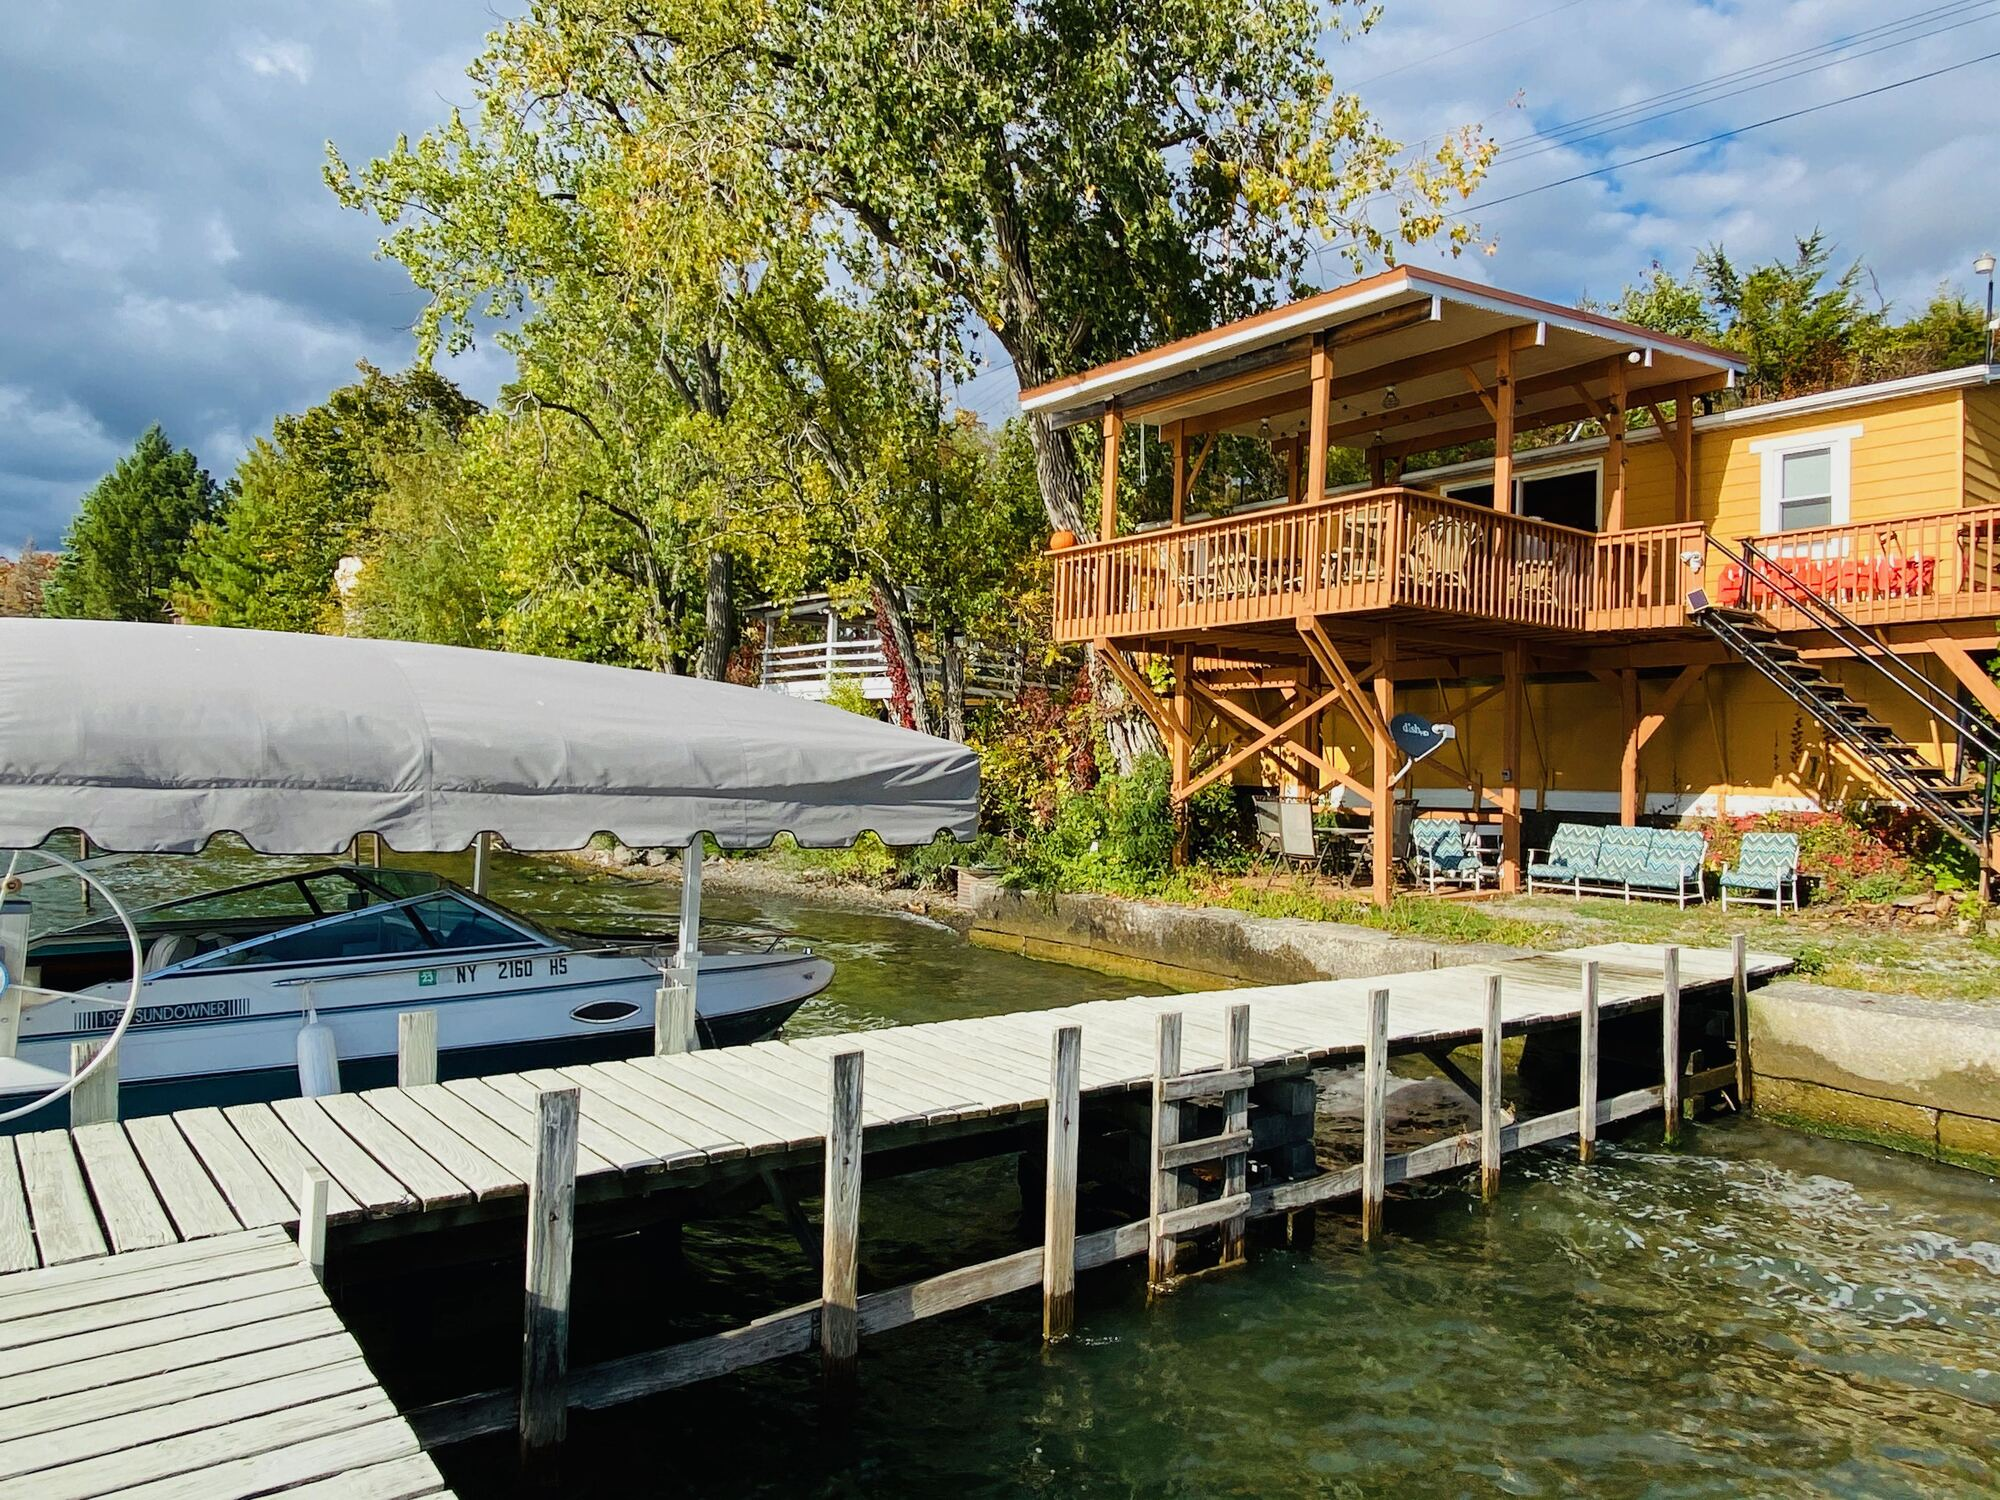 Image for HECK-OF-A-DECK LAKEHOUSE